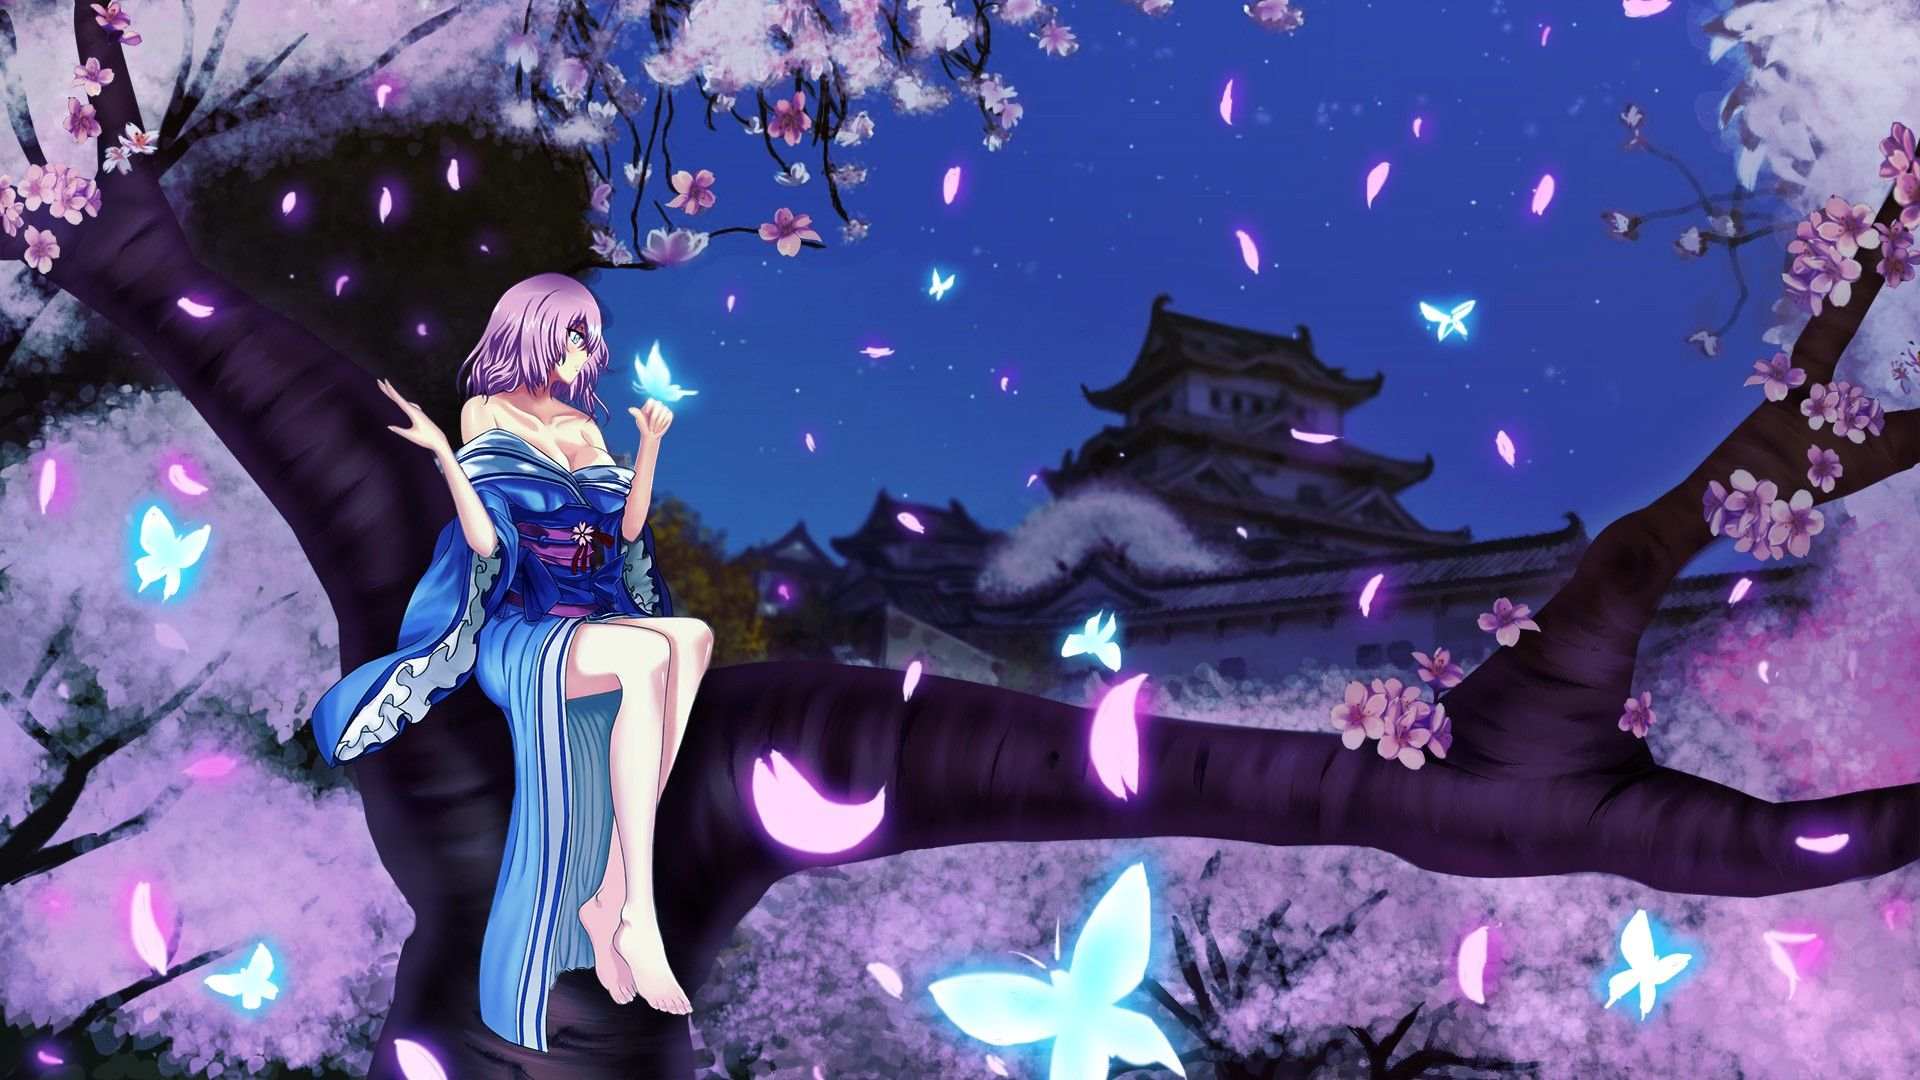 The Cherry Blossom Girl Download Girl Sitting In Cherry Blossom Tree Wallpaper 41322 Wallpaper Anime Anime Cherry Blossom Anime Wallpaper